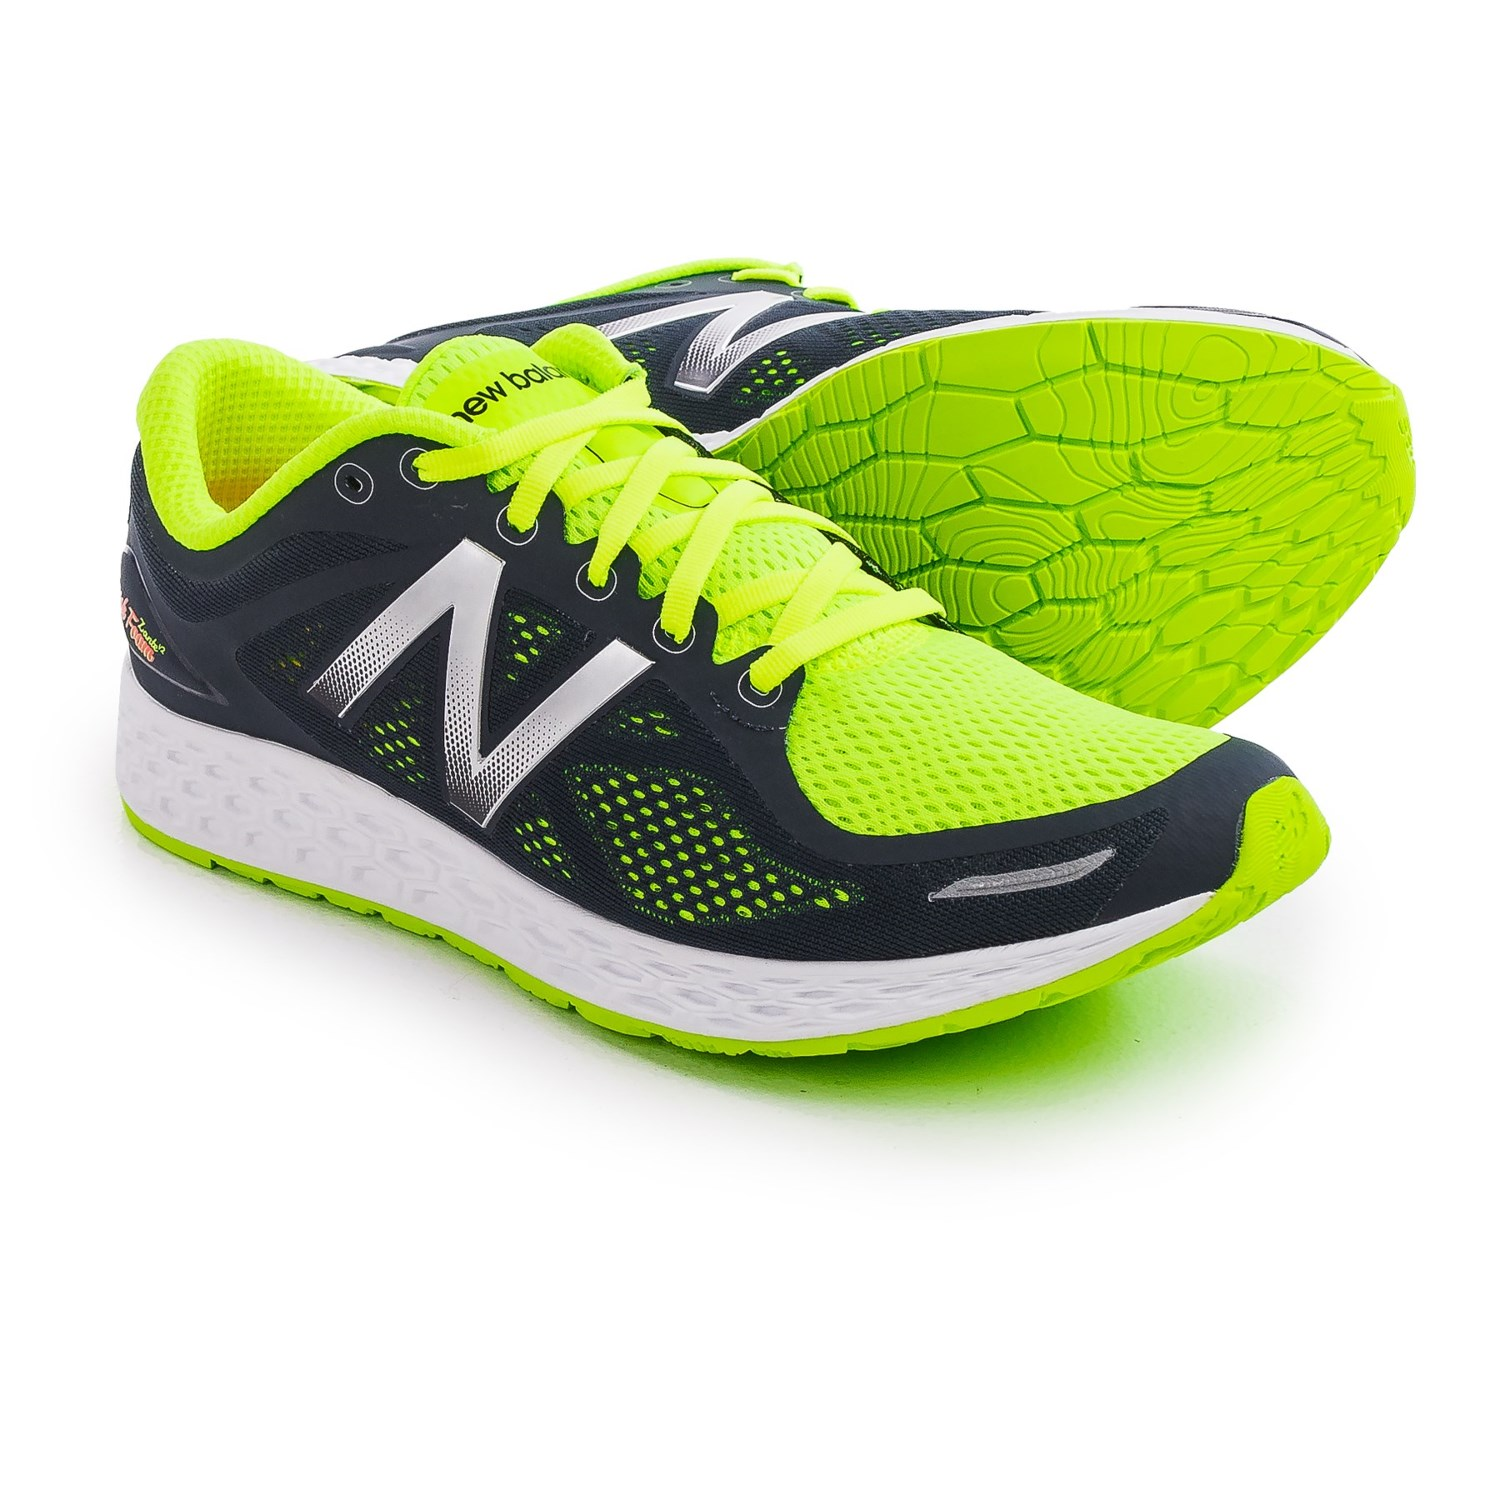 new balance fresh foam zante v2 running shoes for men. Black Bedroom Furniture Sets. Home Design Ideas